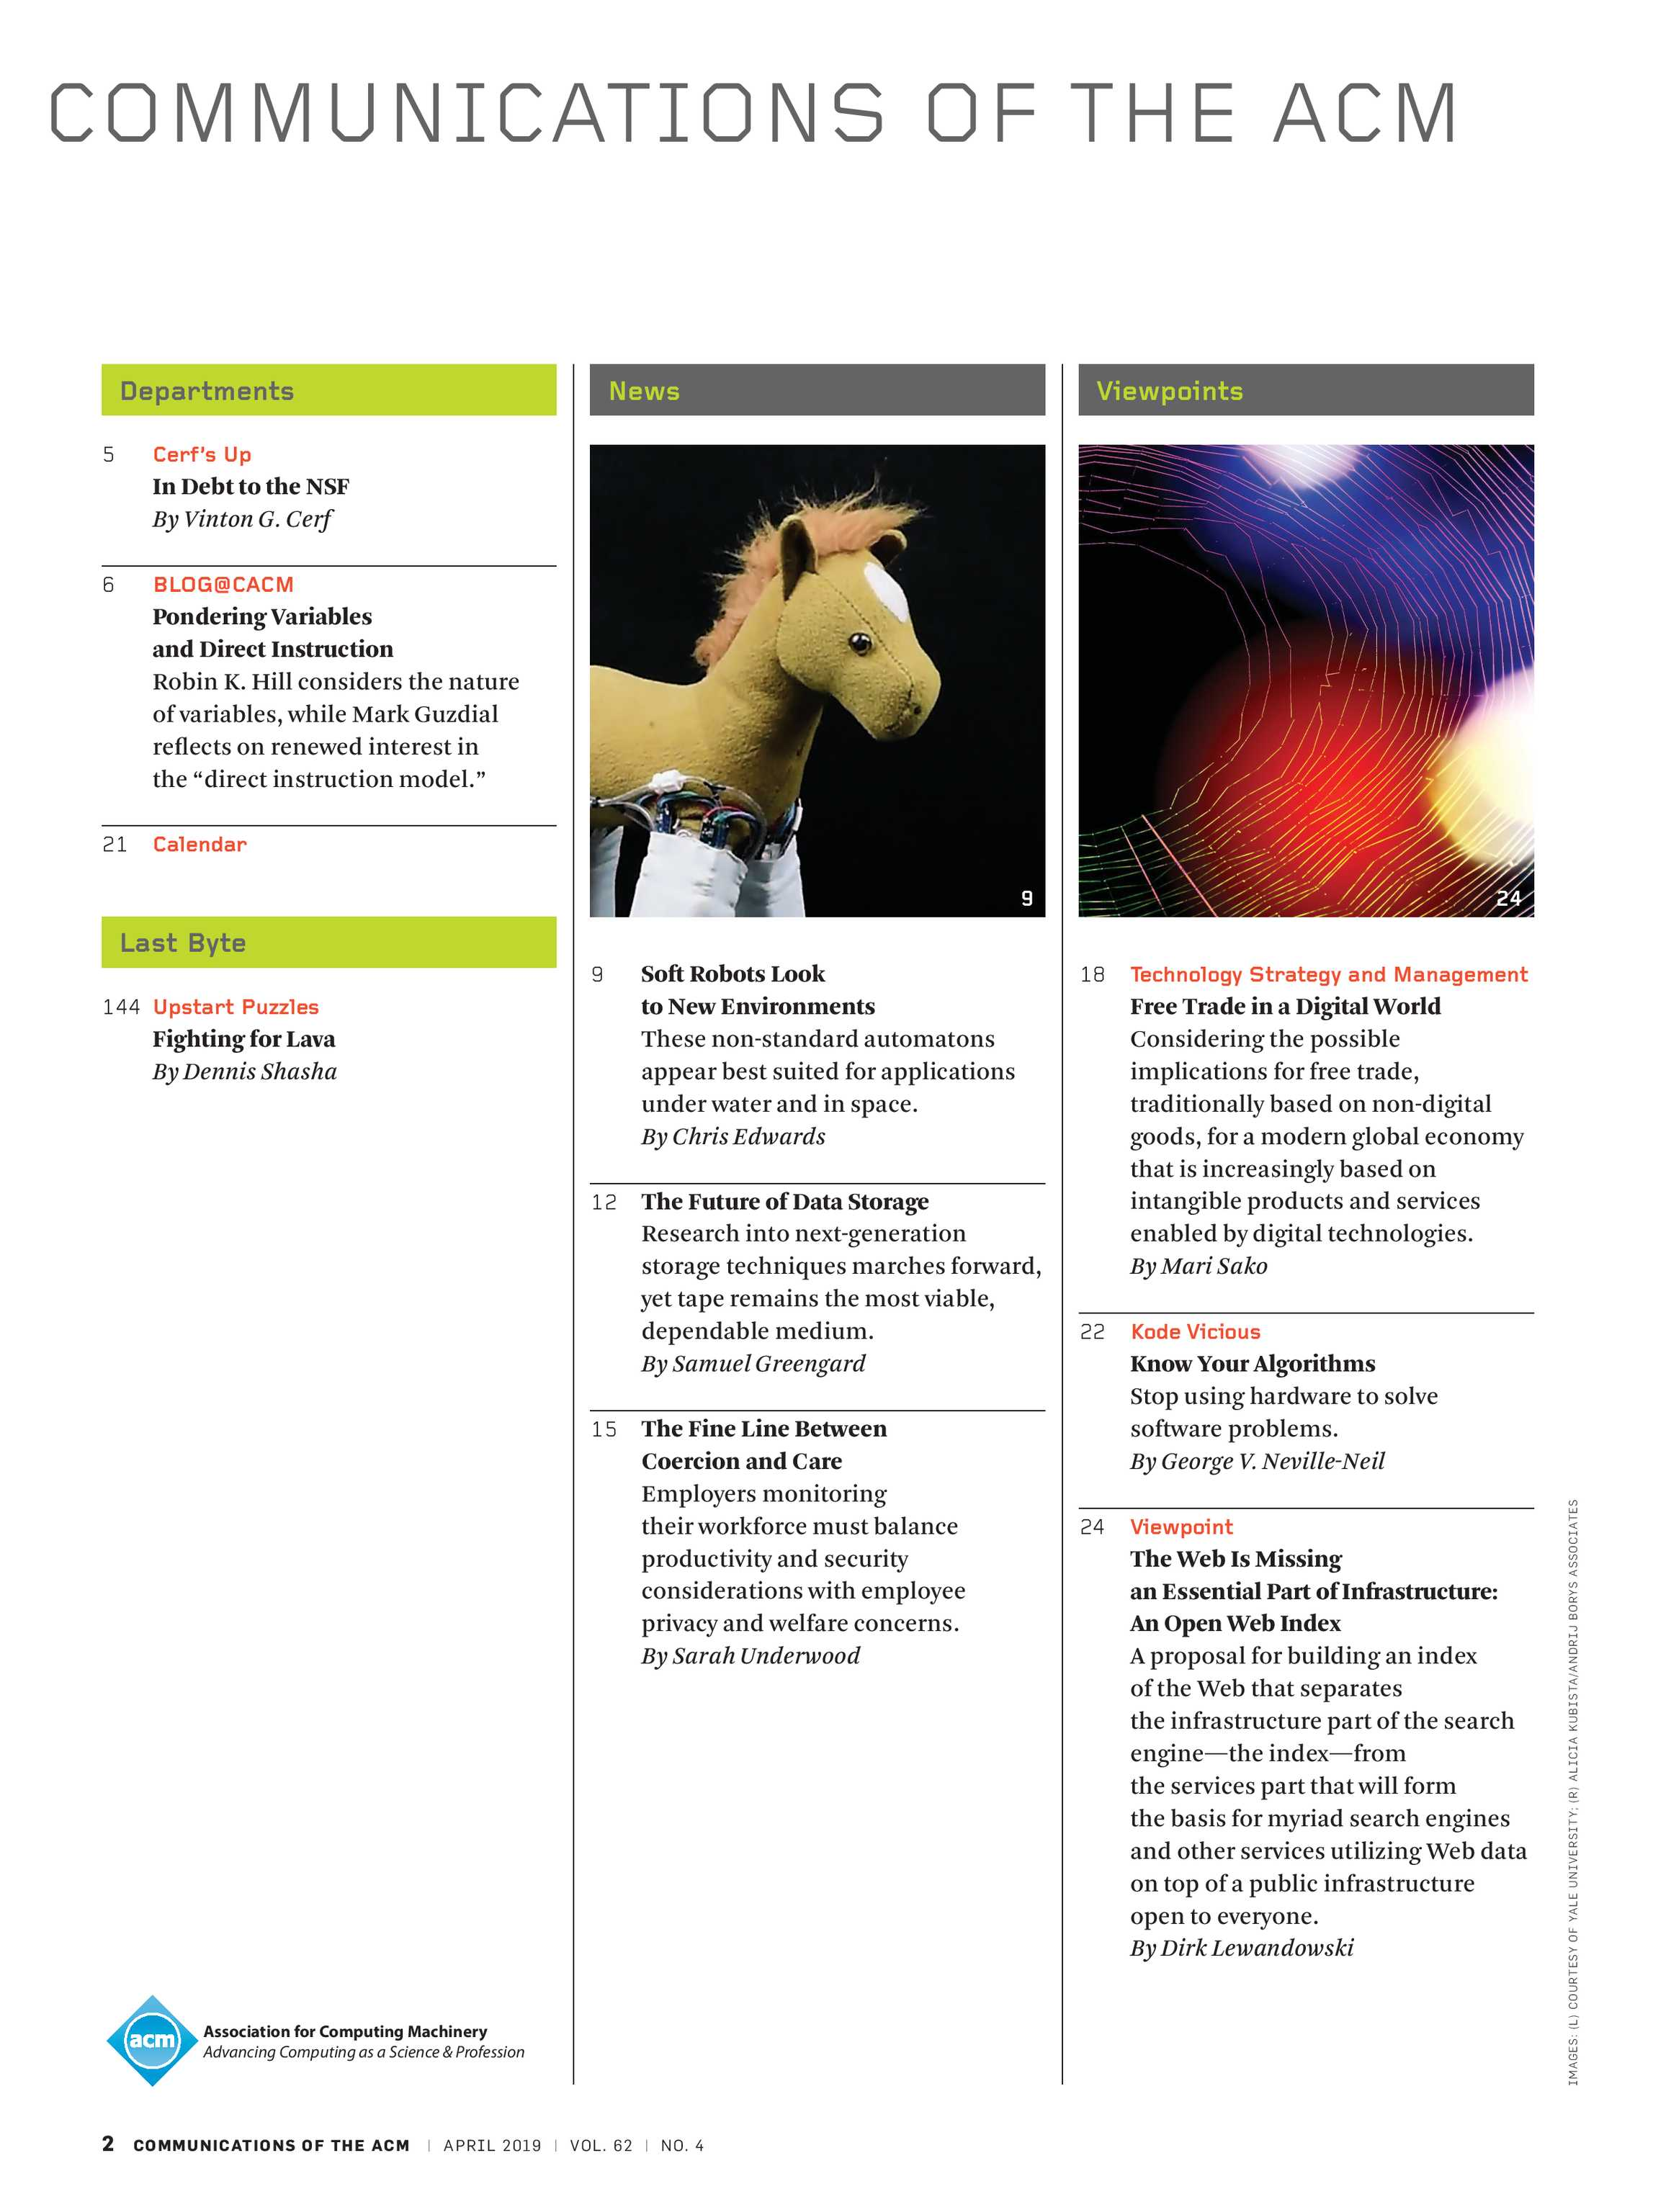 Communications of the ACM - April 2019 - page 2